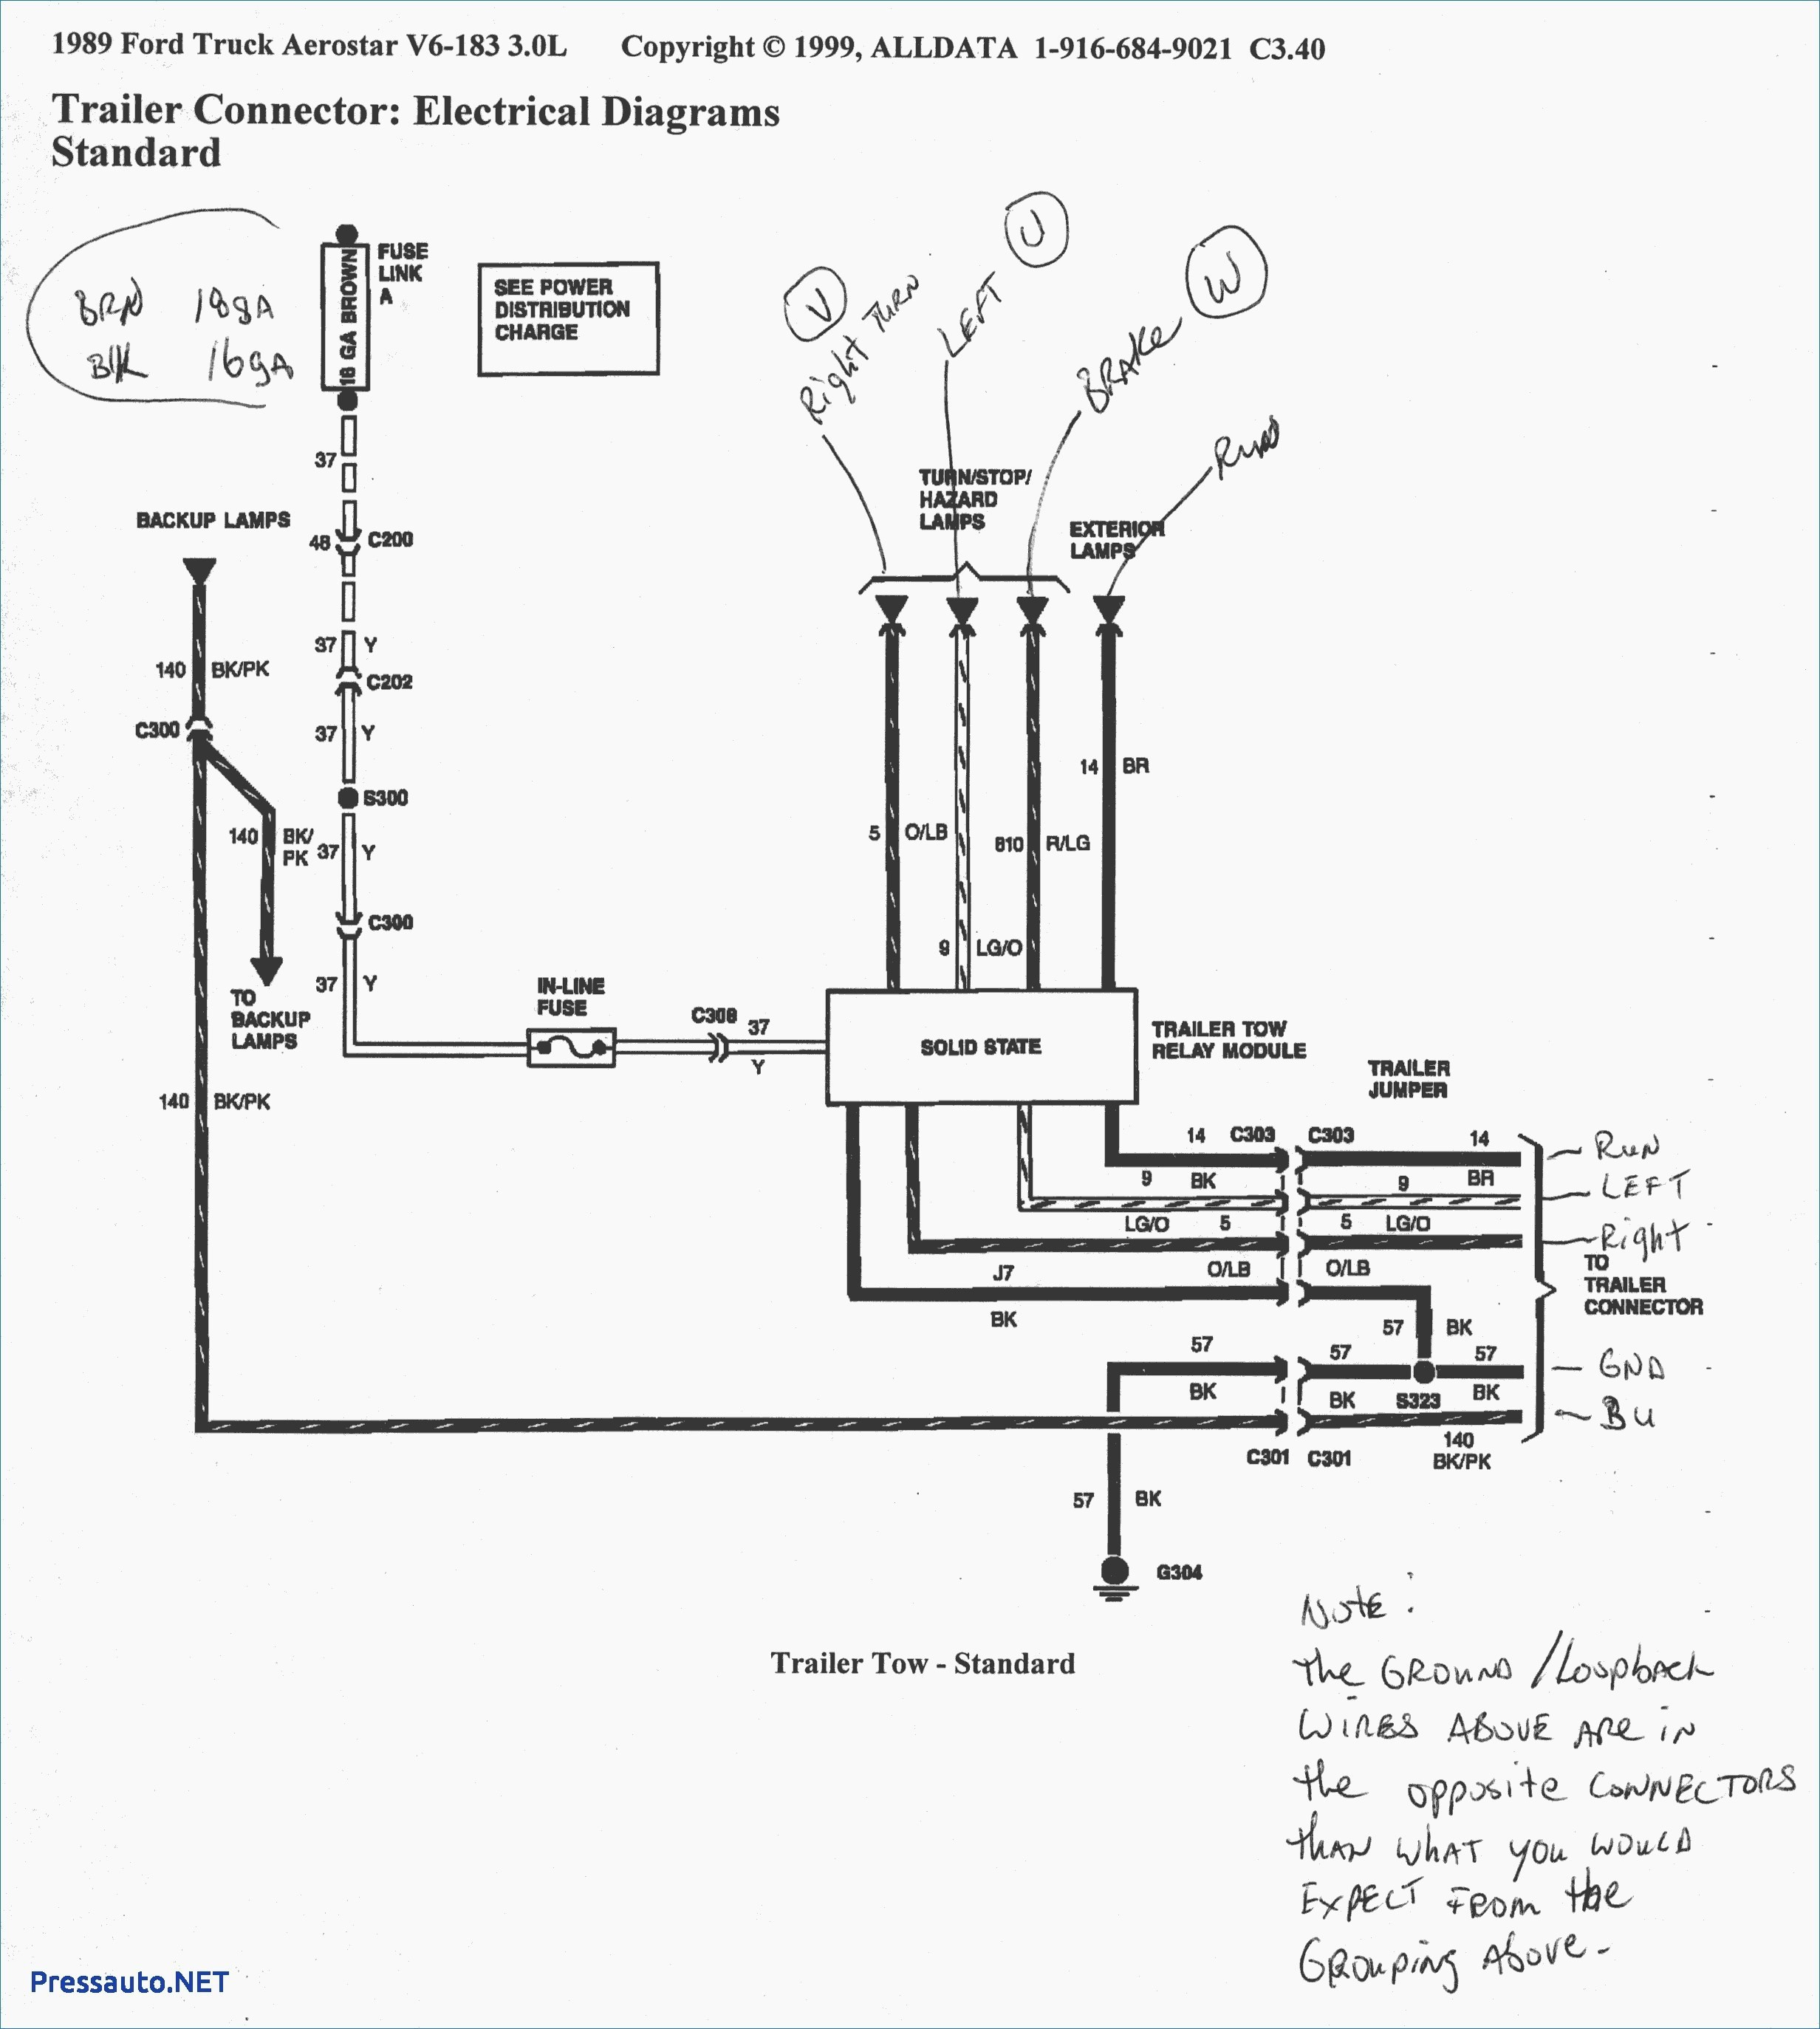 Telsta Bucket Truck Wiring Diagram Telsta Bucket Truck Wiring Diagram Of Telsta Bucket Truck Wiring Diagram Led Tail Light Wiring Diagram 3 Wire Led Tail Light Wiring Diagram